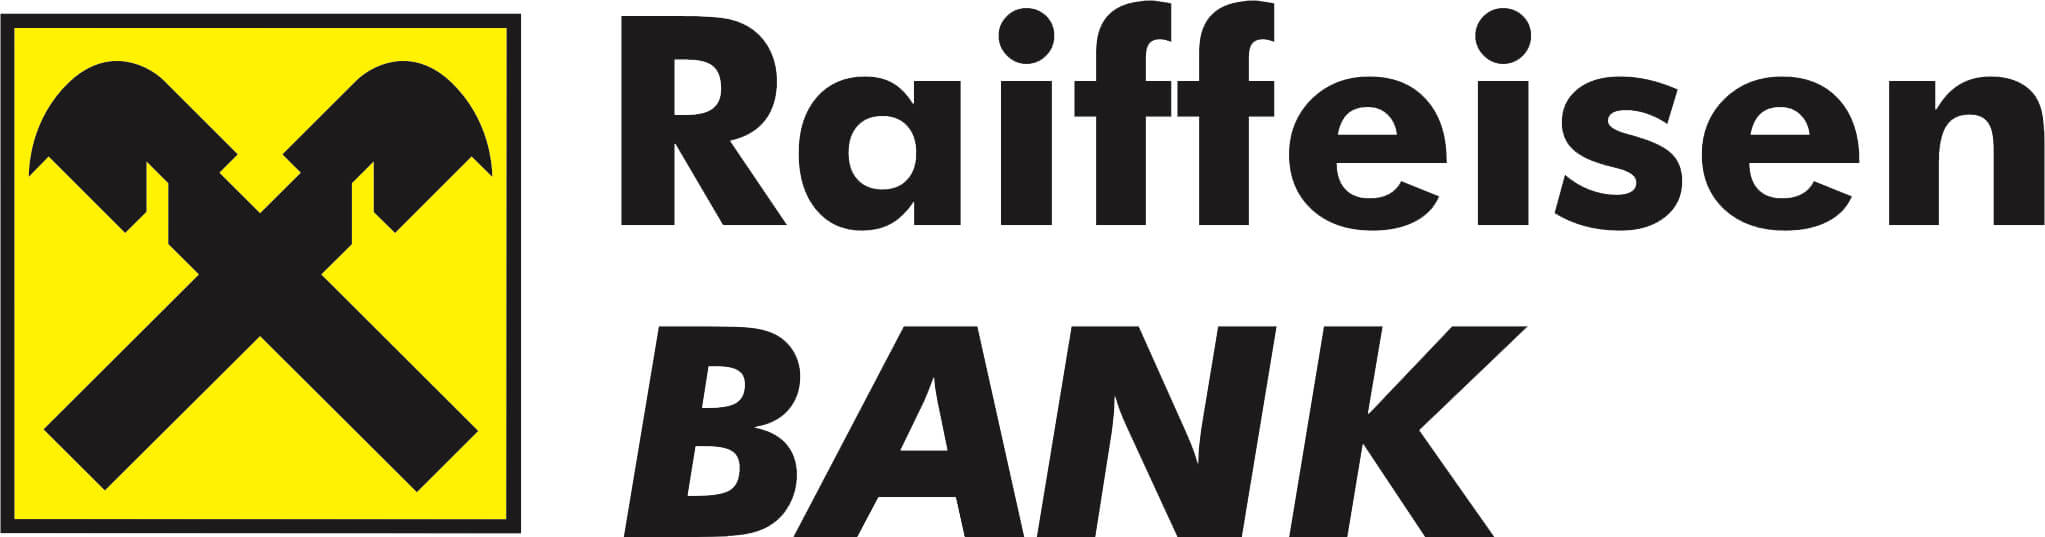 Raiffeisen website logo